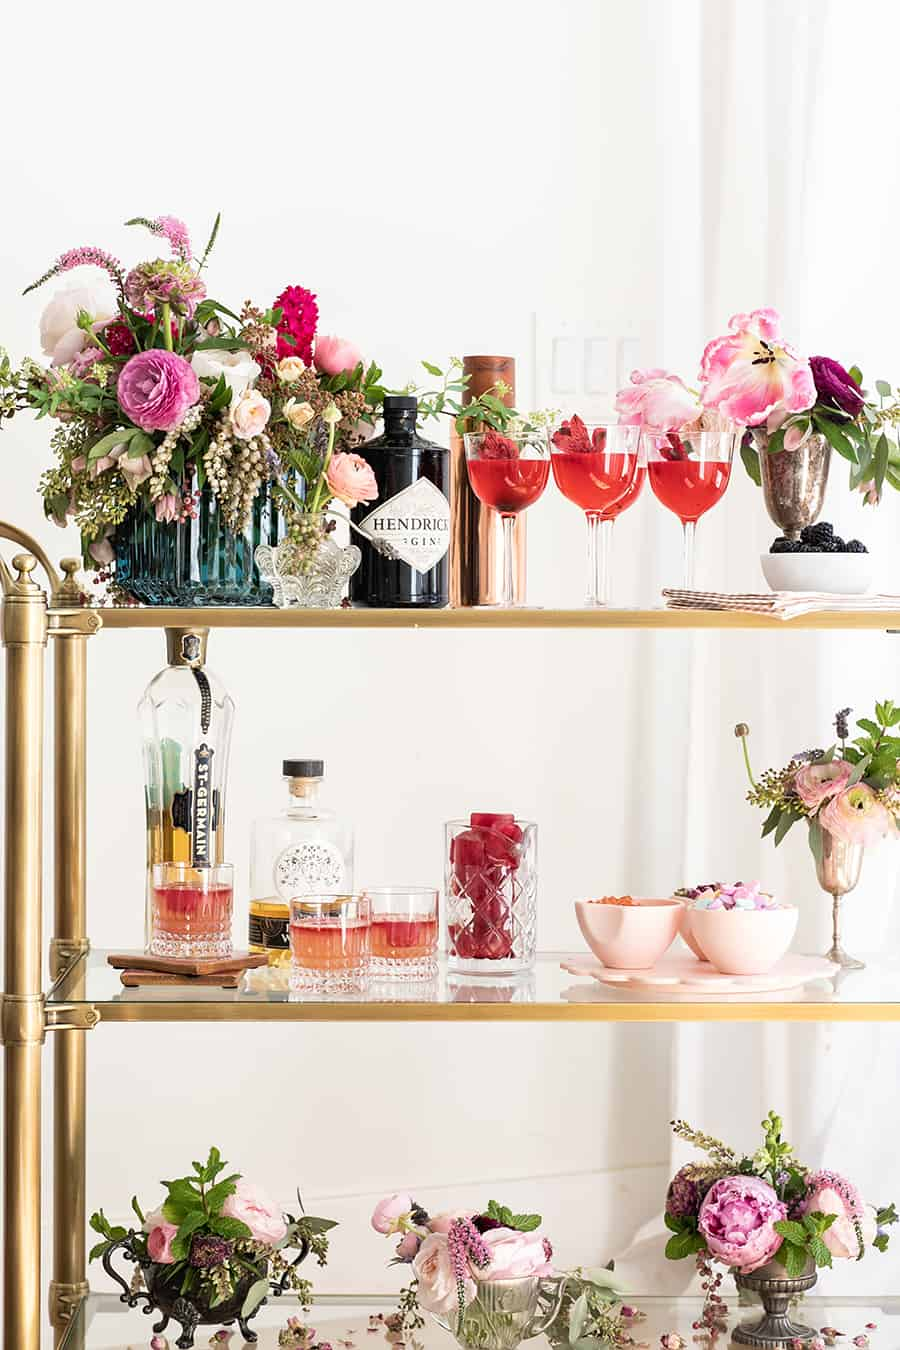 Gin and flower bar birthday party ideas.